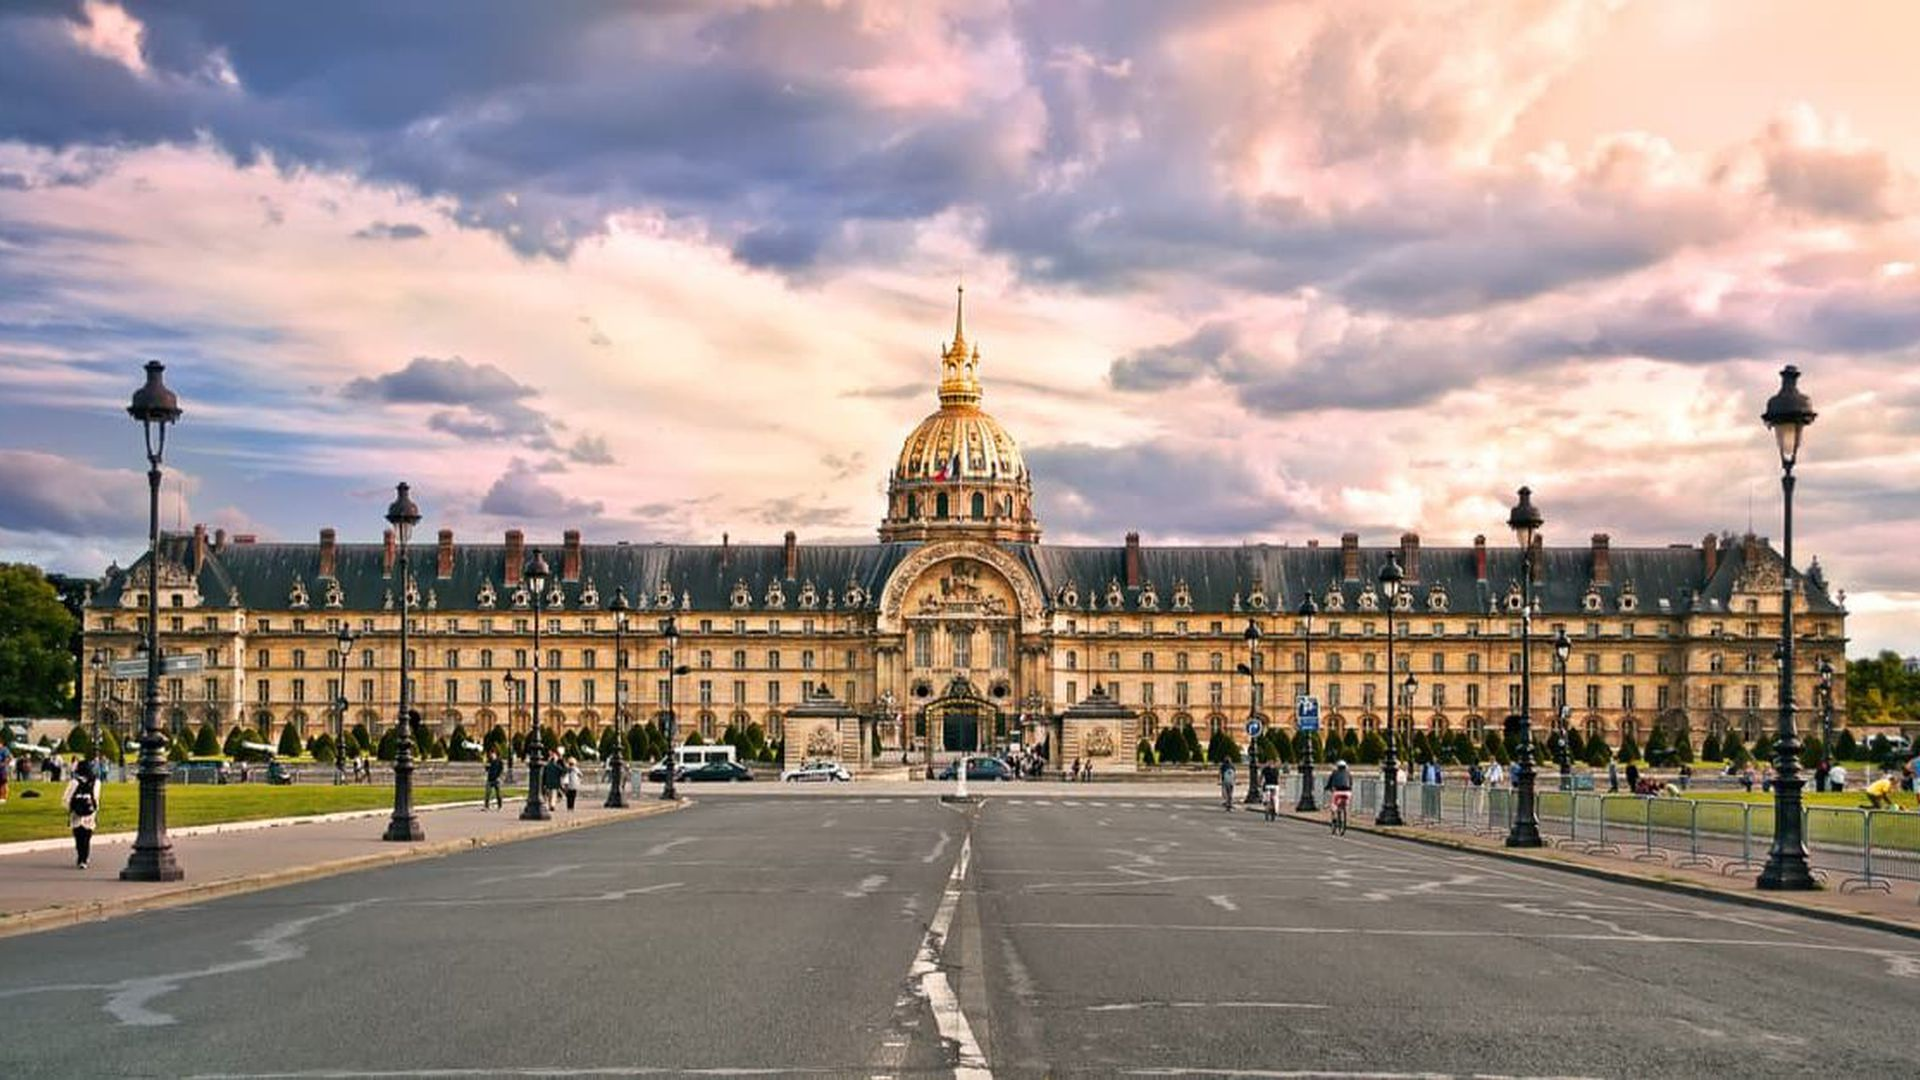 Les Invalides — the Museum of the Army: Skip-the-Line Ticket & Audio Tour